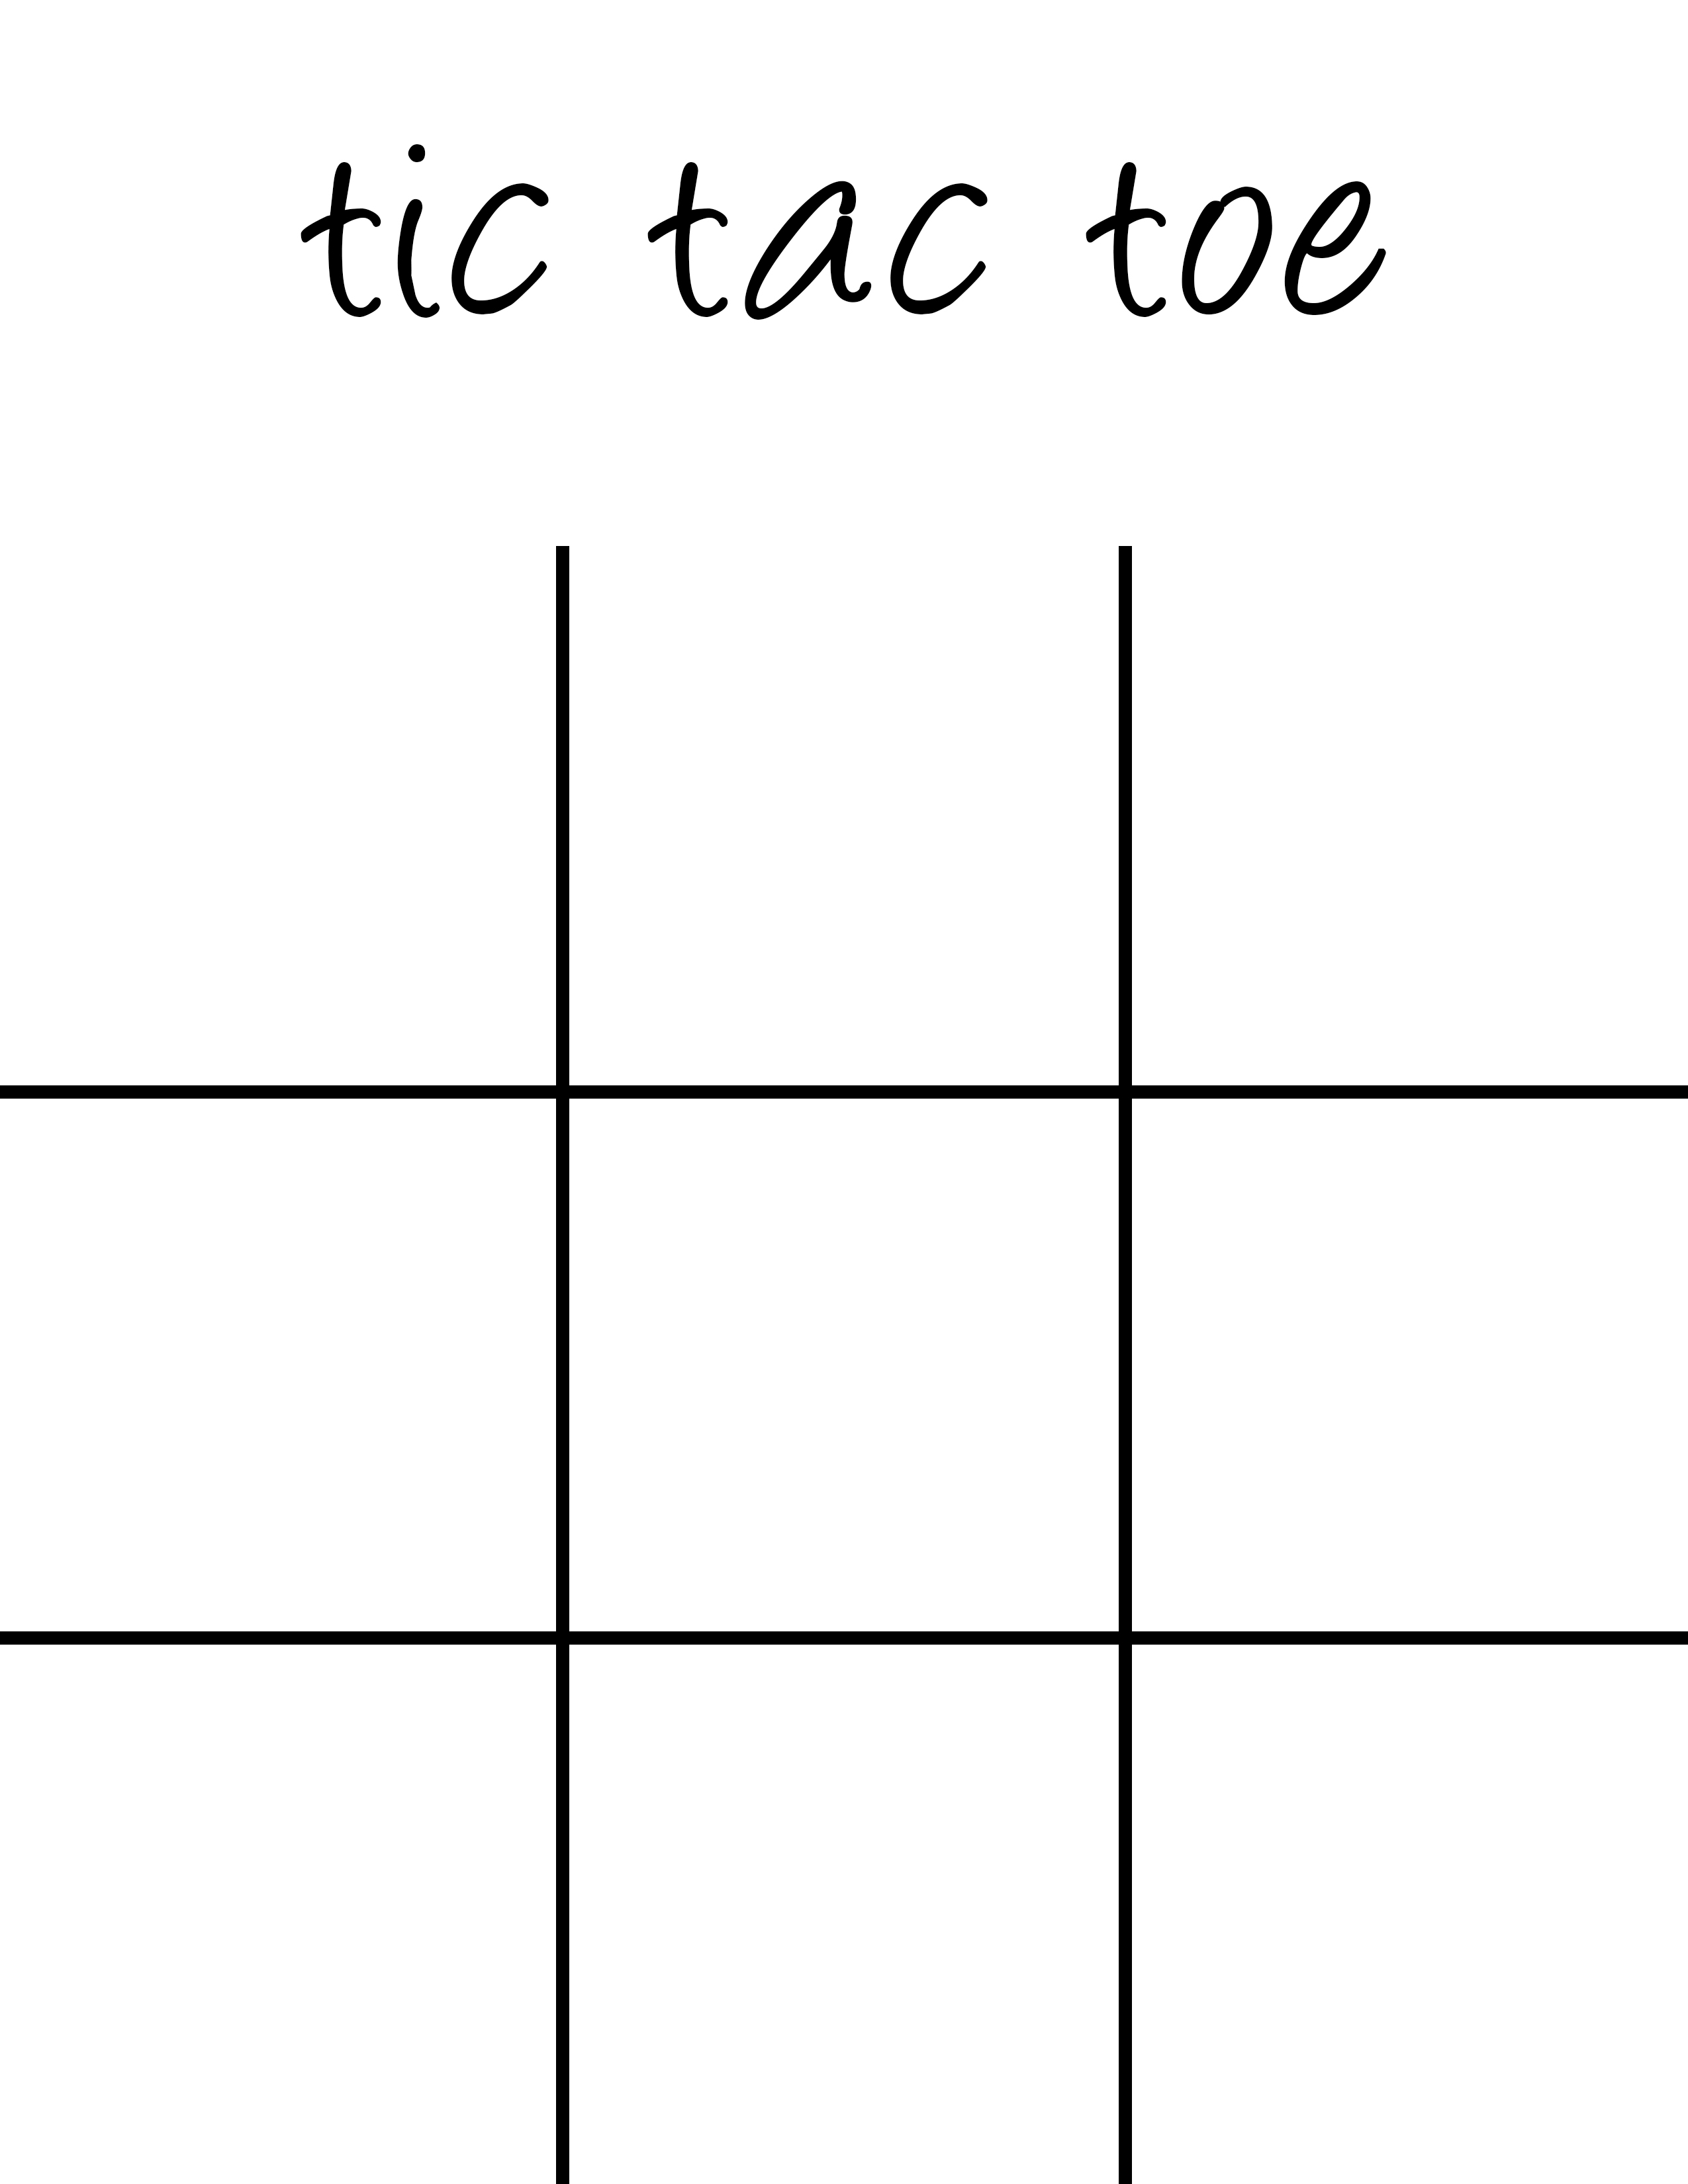 Tic Tac Toe Board Printable - 5 Minutes for Mom